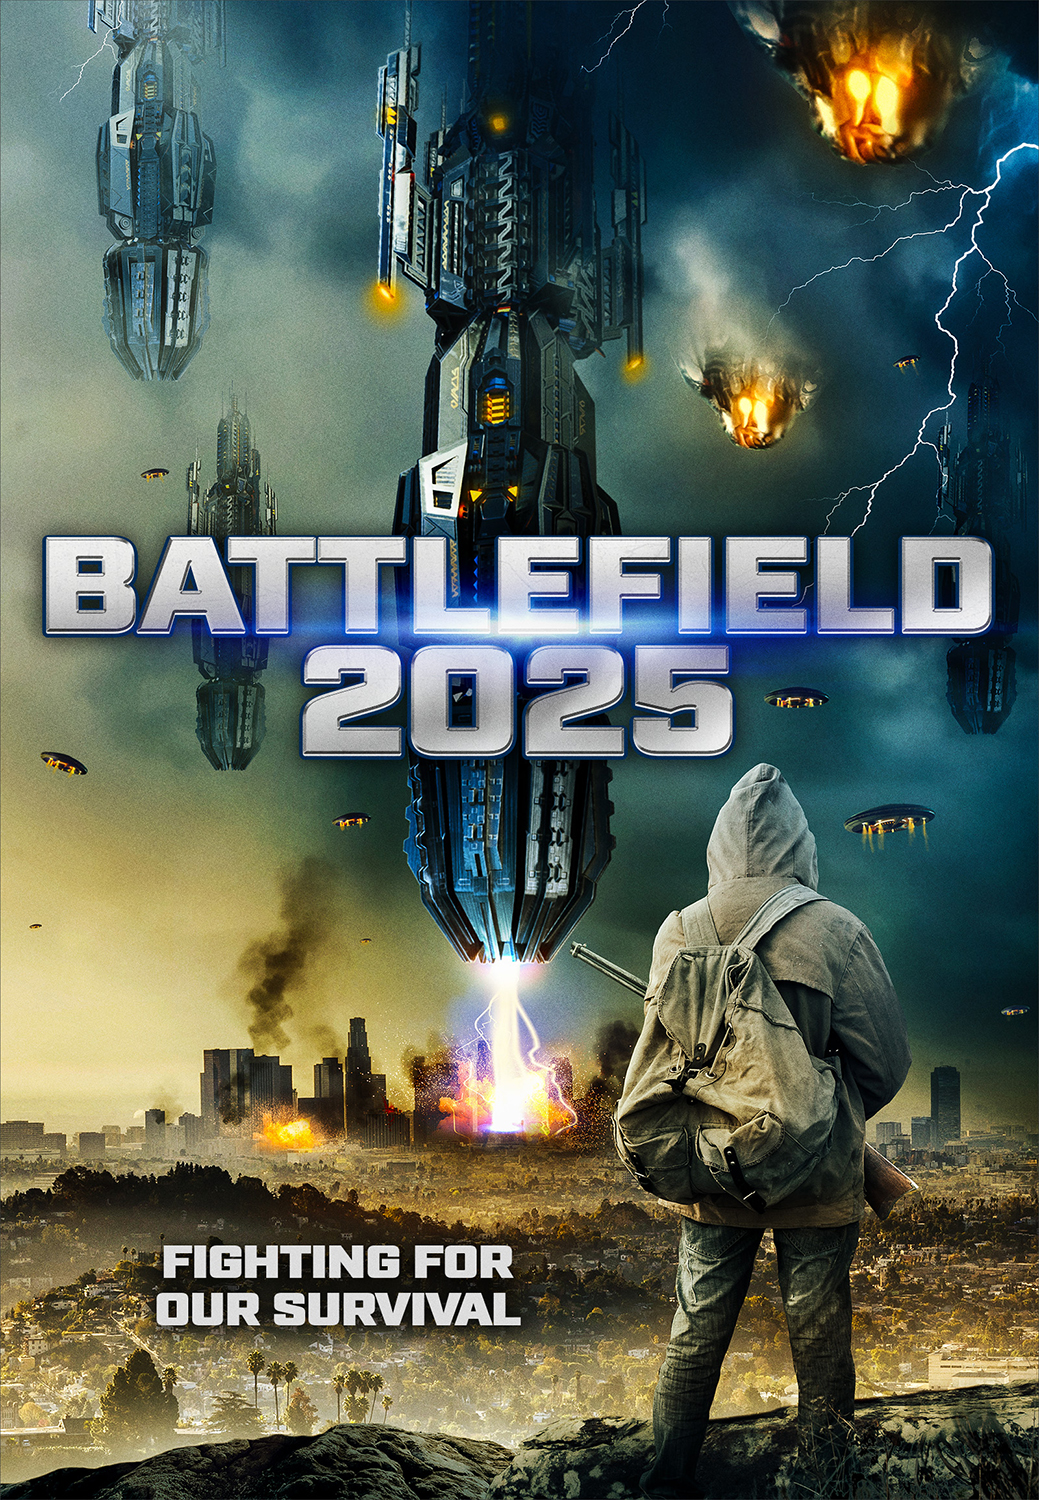 Battlefield 2025 Key Art